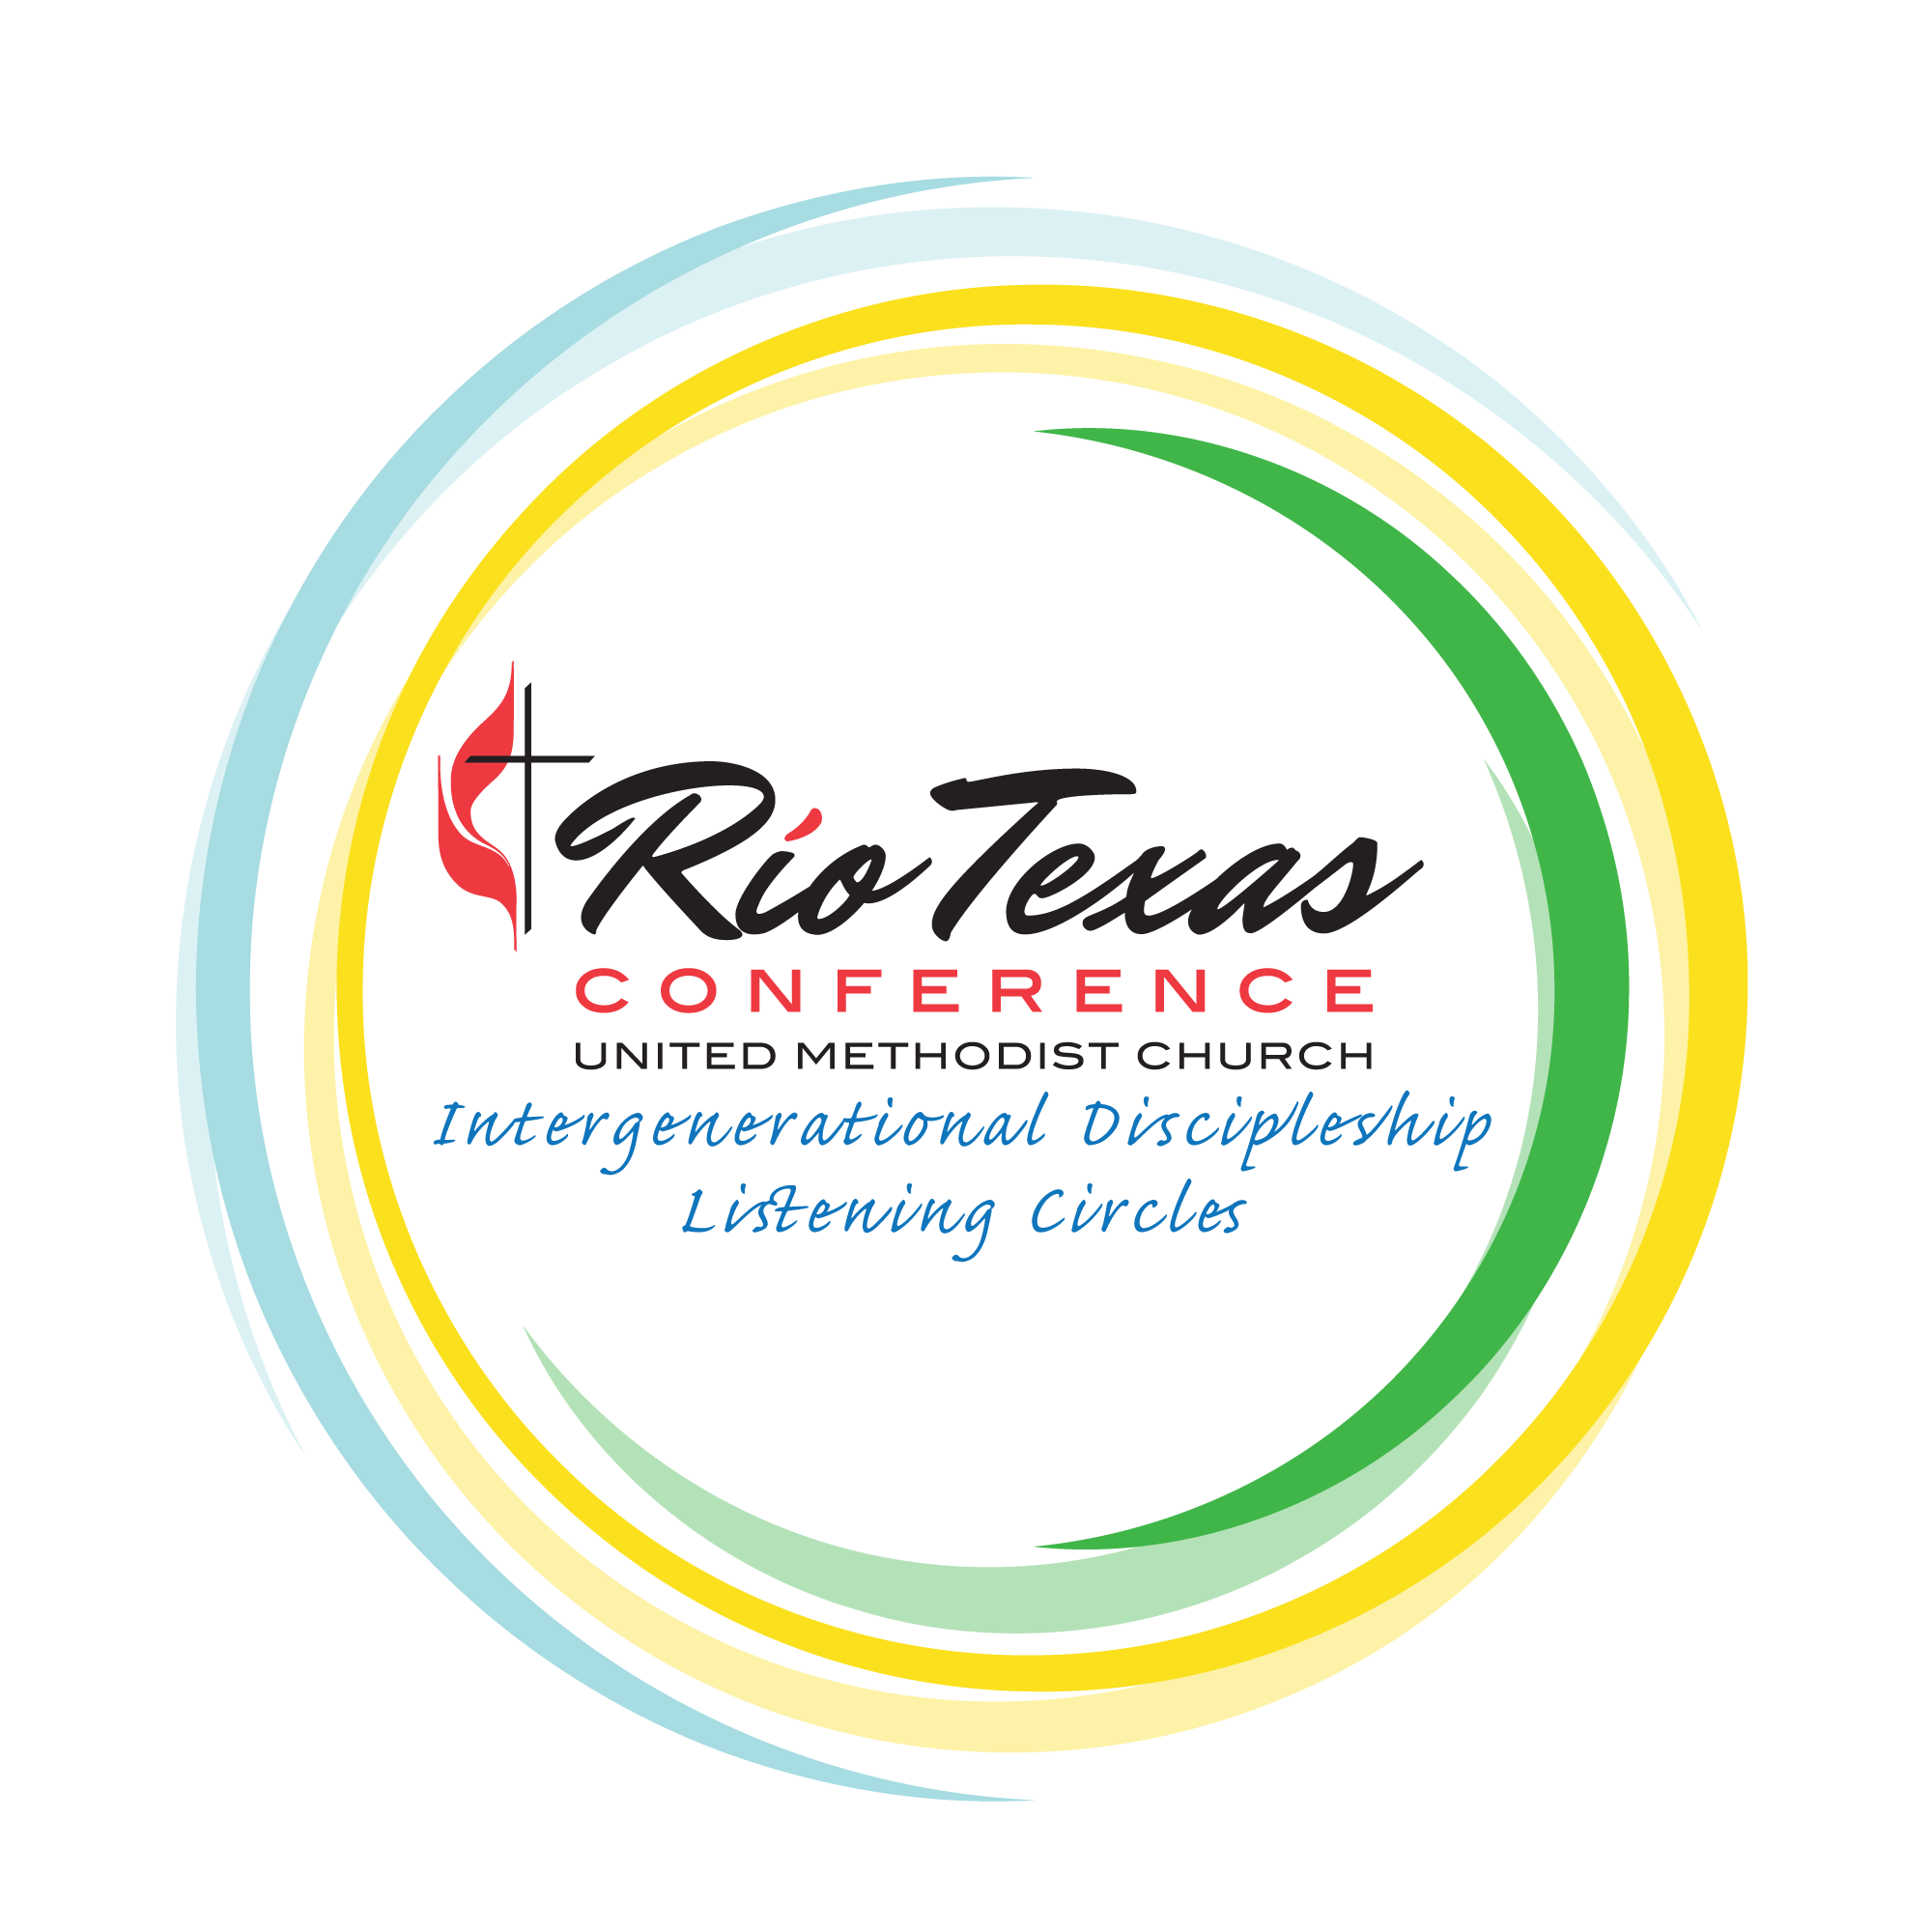 intergenerational-discipleship-listening-cirlces.png